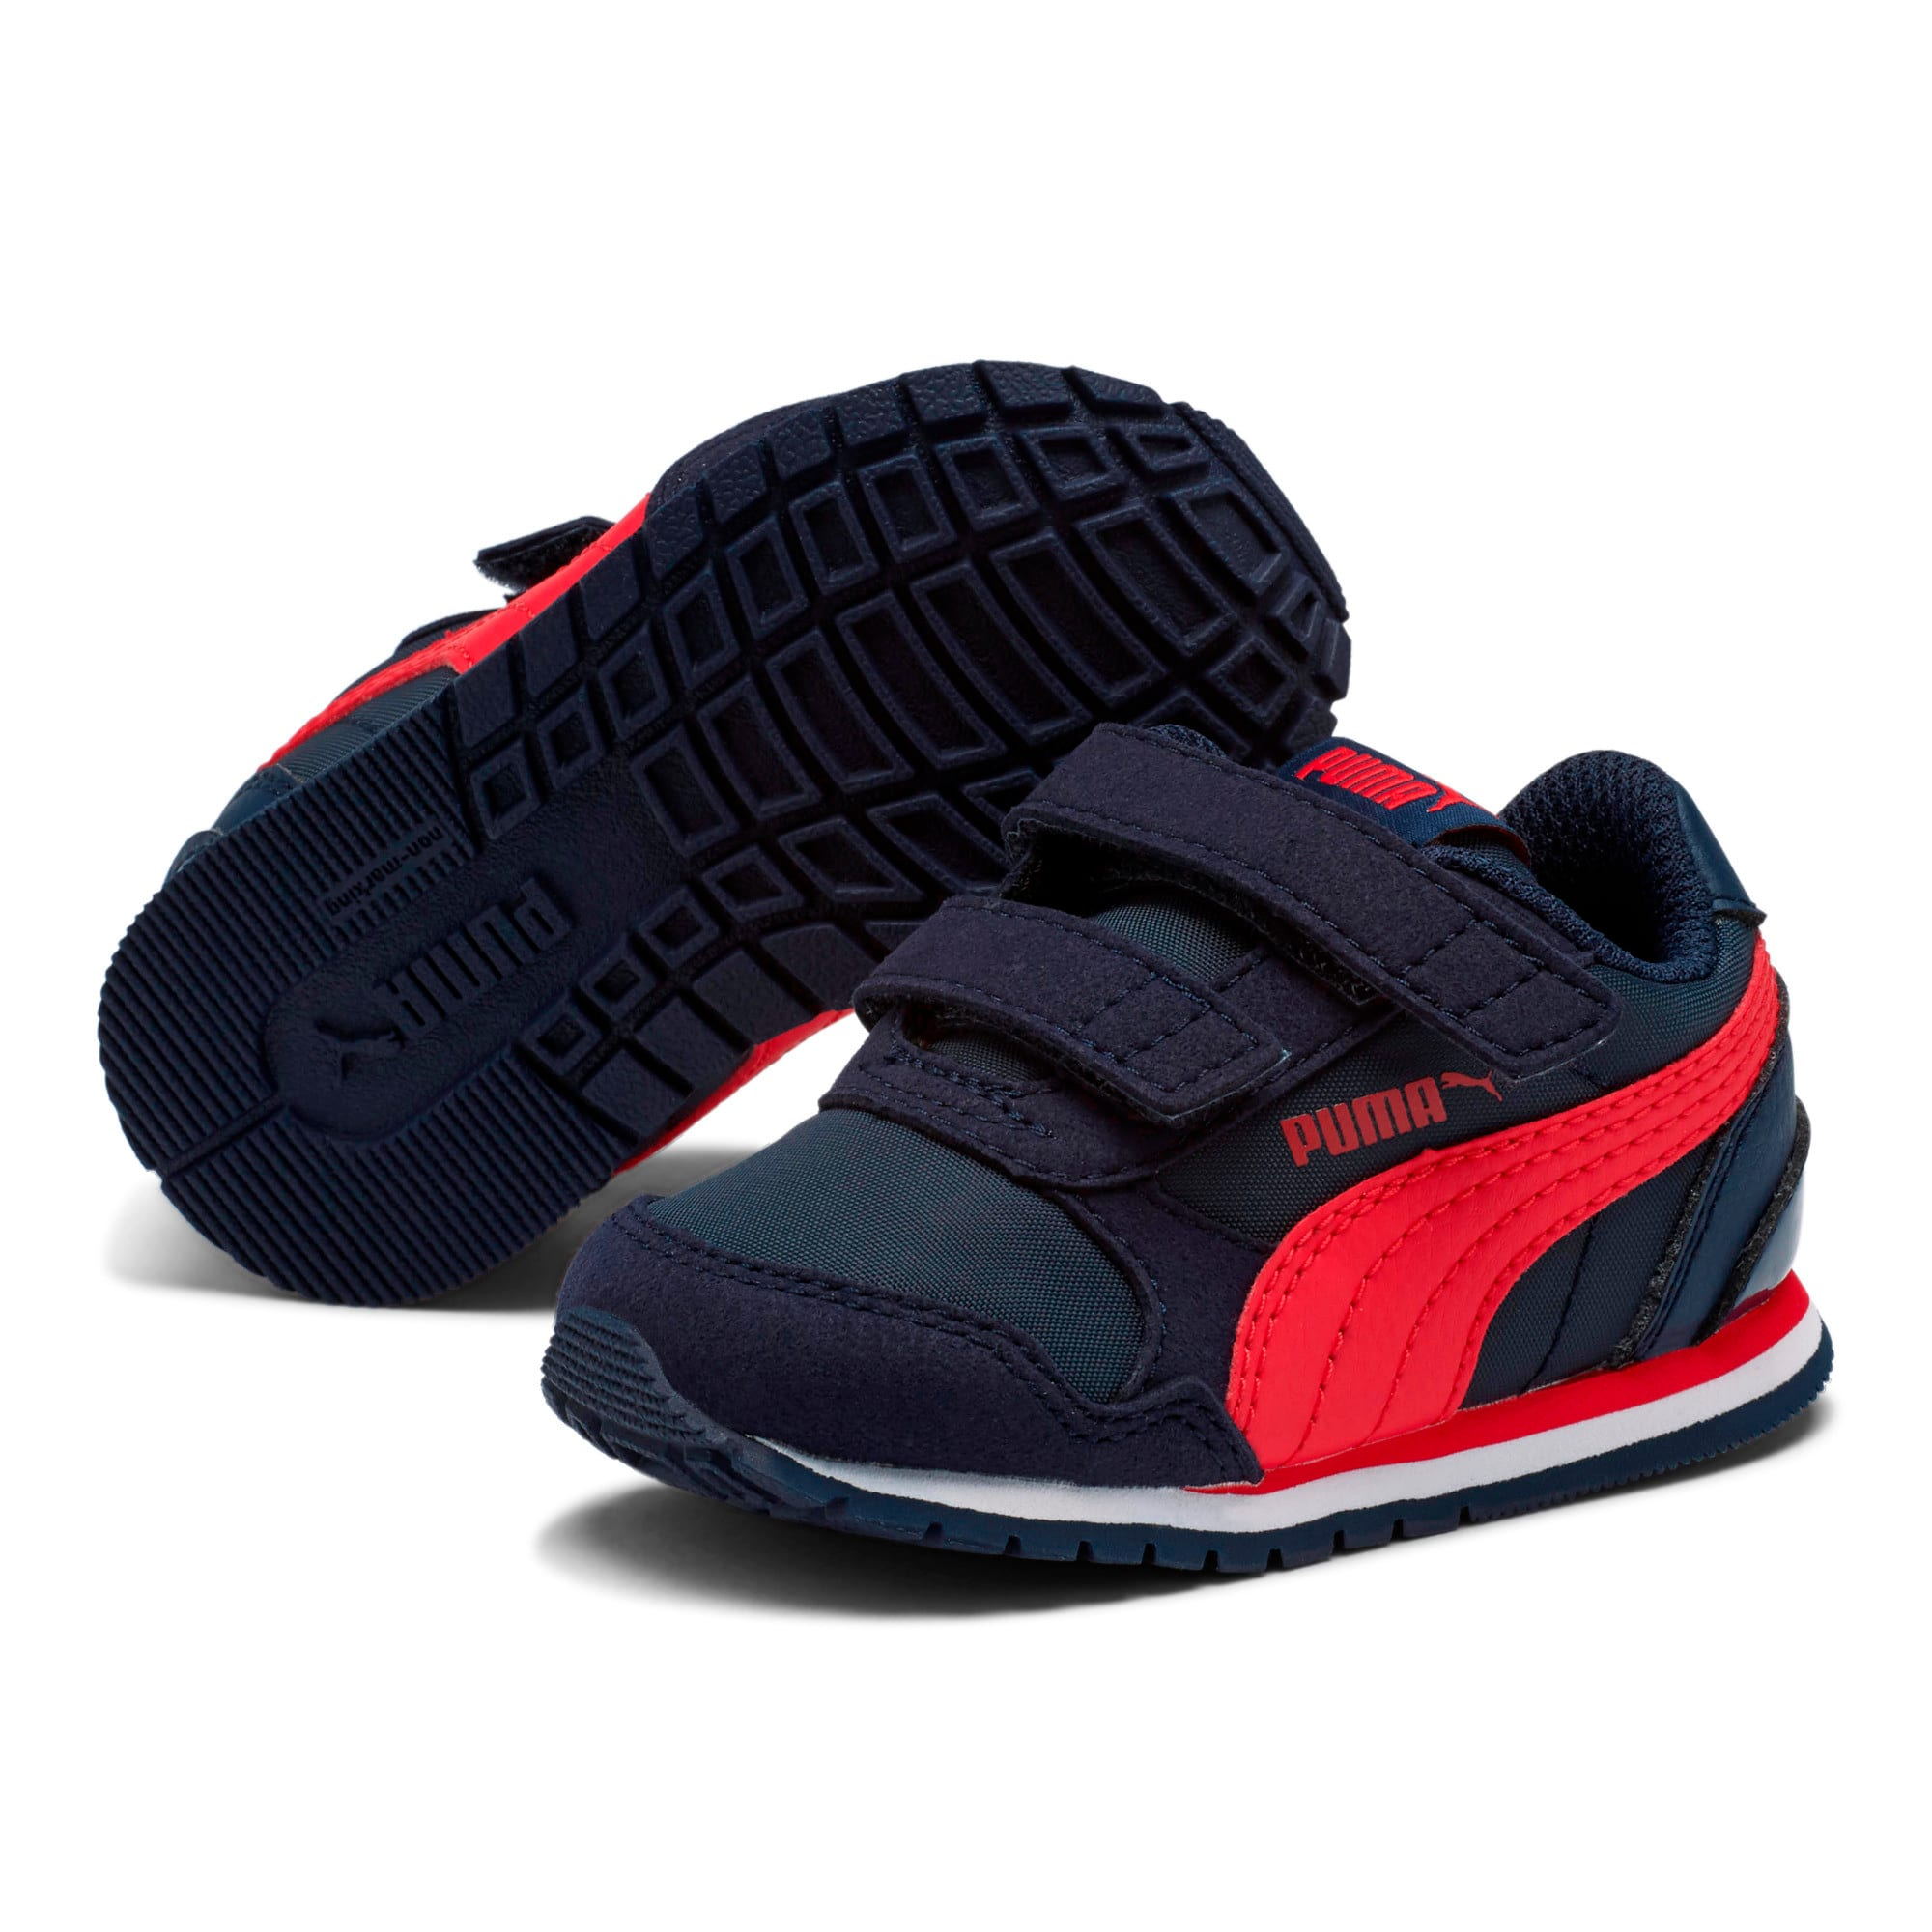 Thumbnail 2 of ST Runner V2 V Toddler Shoes, Peacoat-Ribbon Red, medium